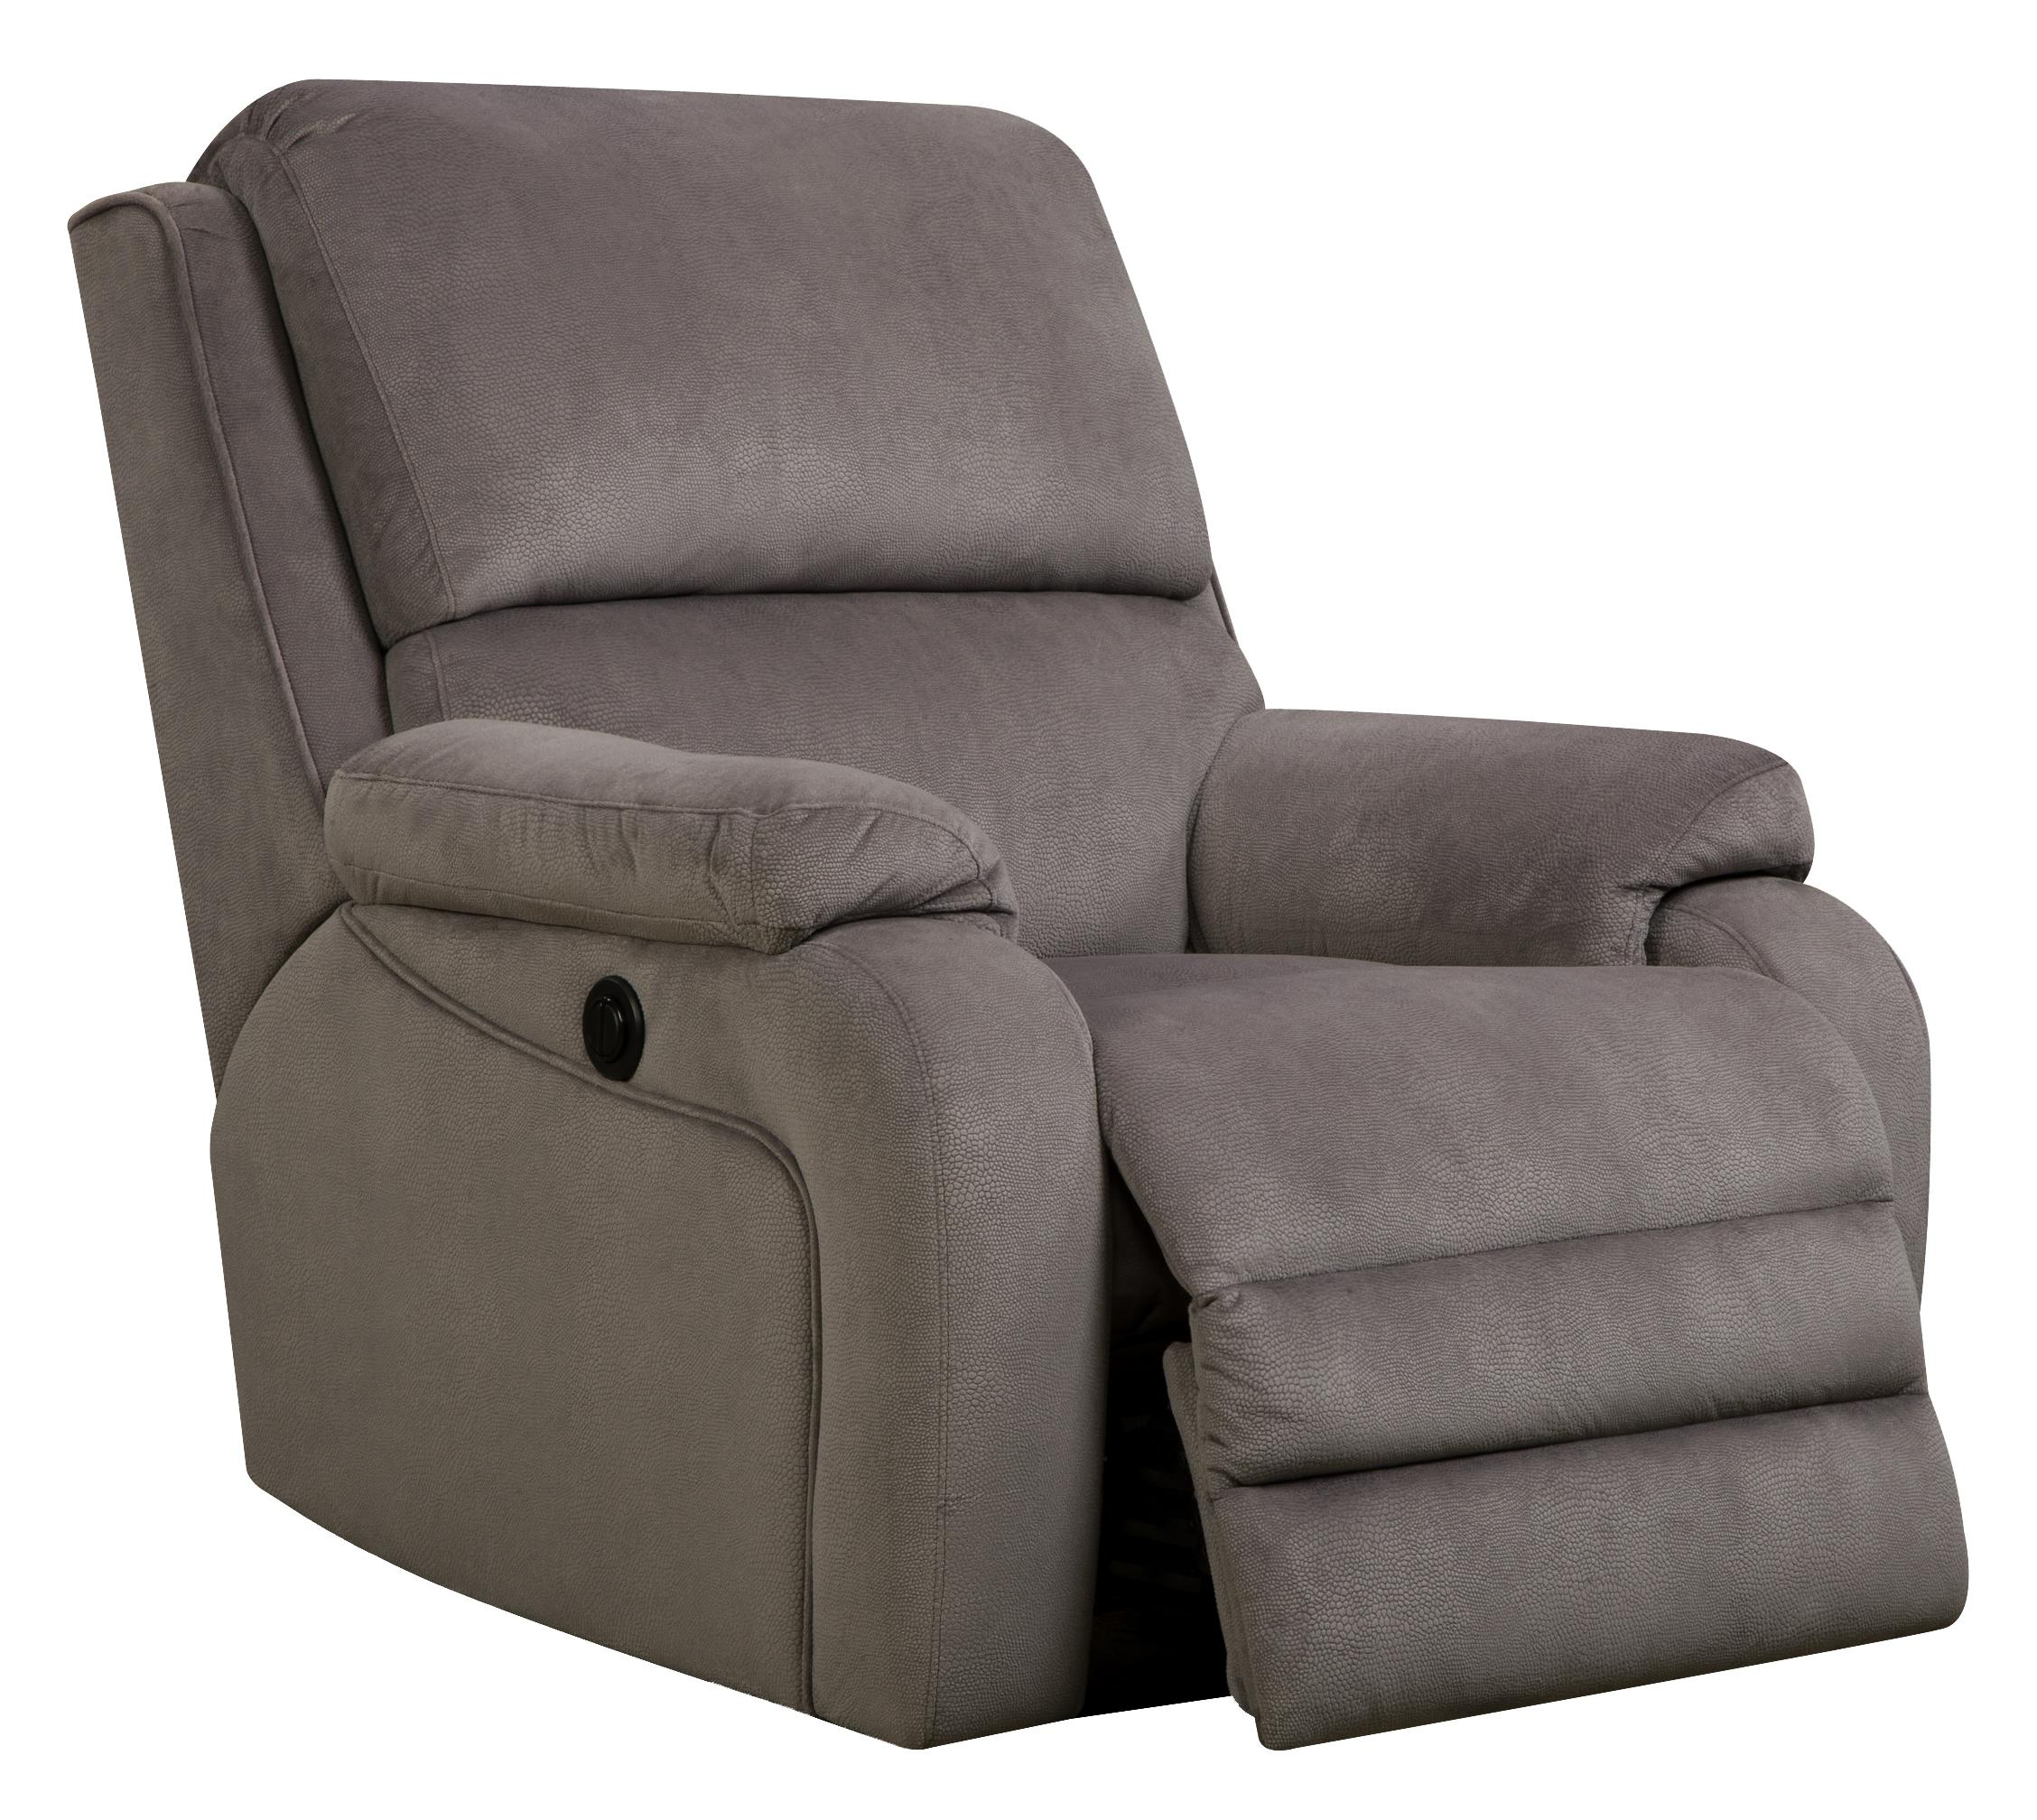 Southern Motion Recliners Ovation Full Bed Layout Power